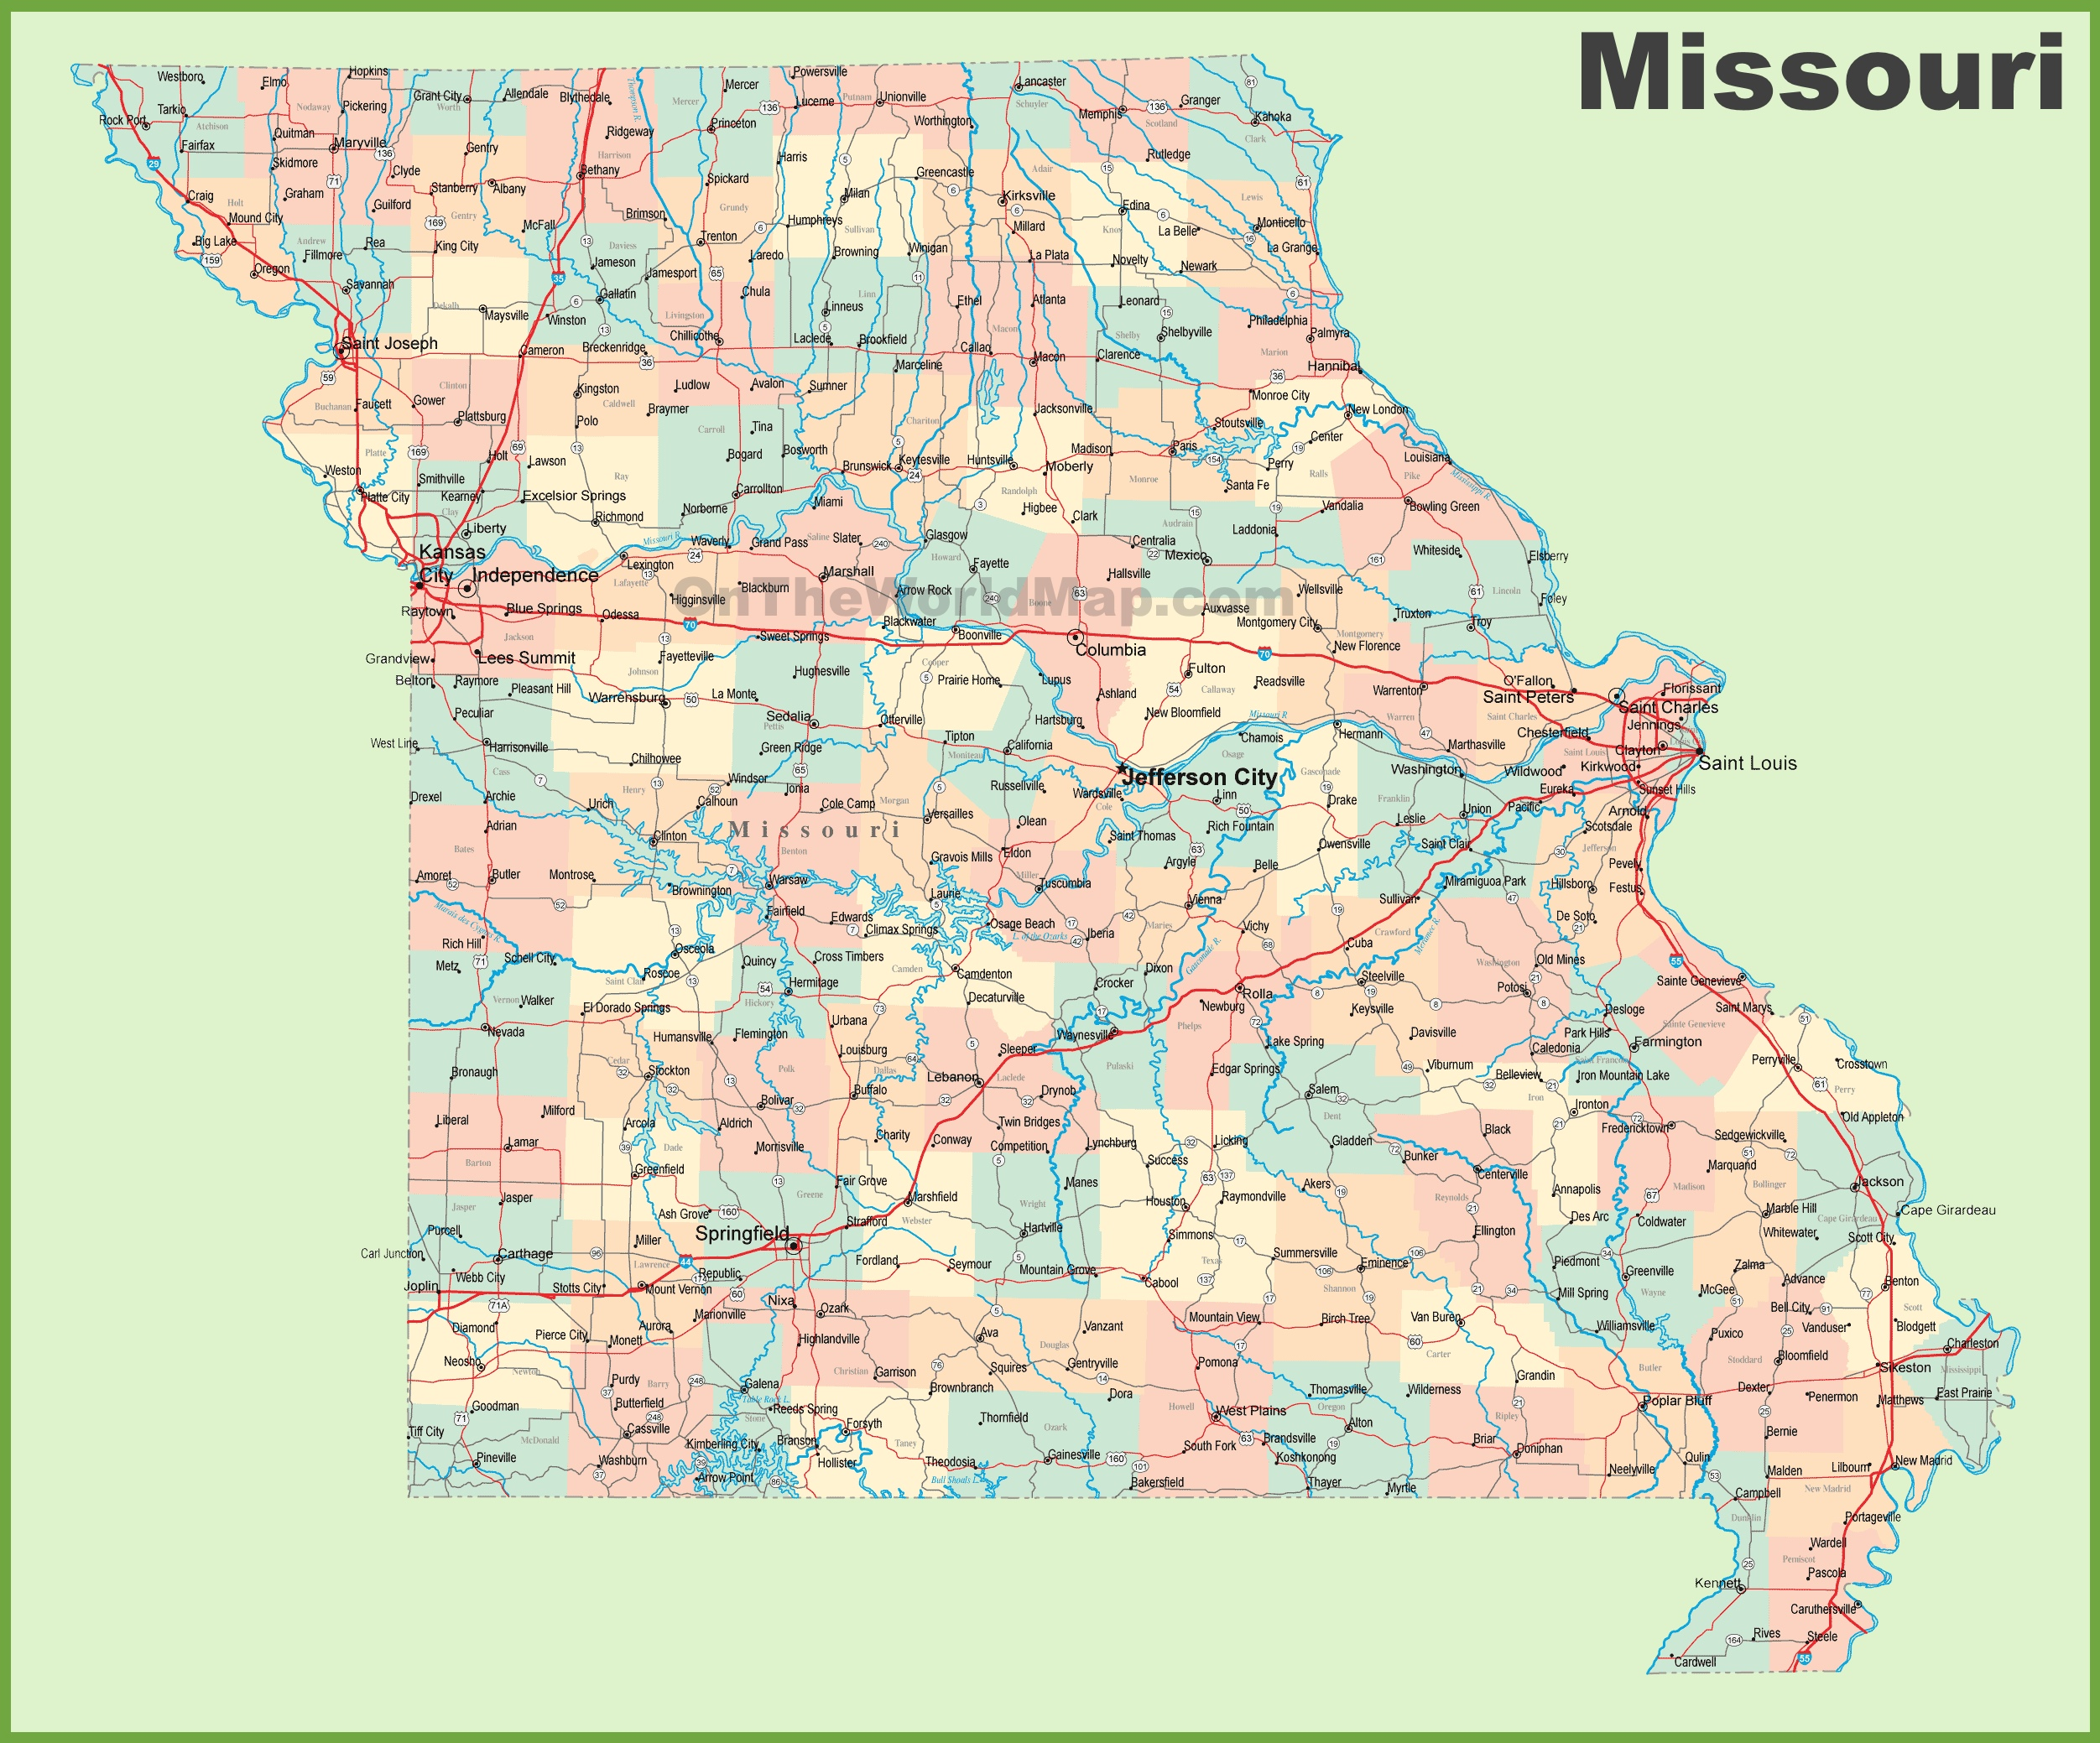 Road Map Of Missouri With Cities - Missourimap